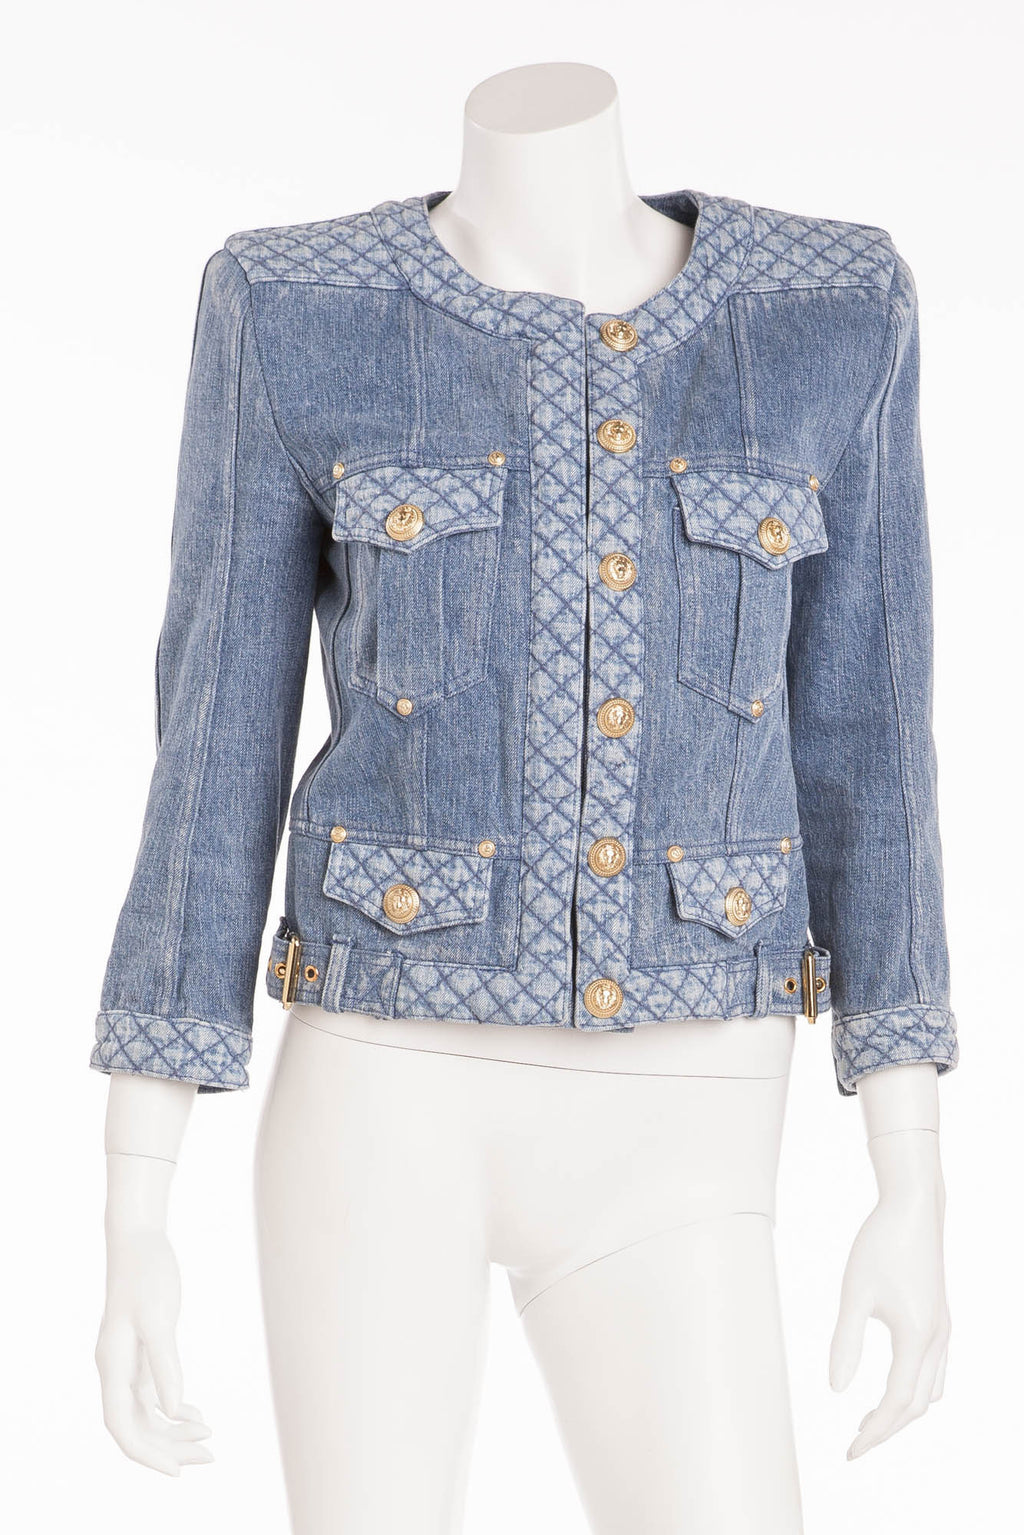 Balmain - Denim Jean Quilted Trim Jacket with Gold Snap Buttons - FR 40